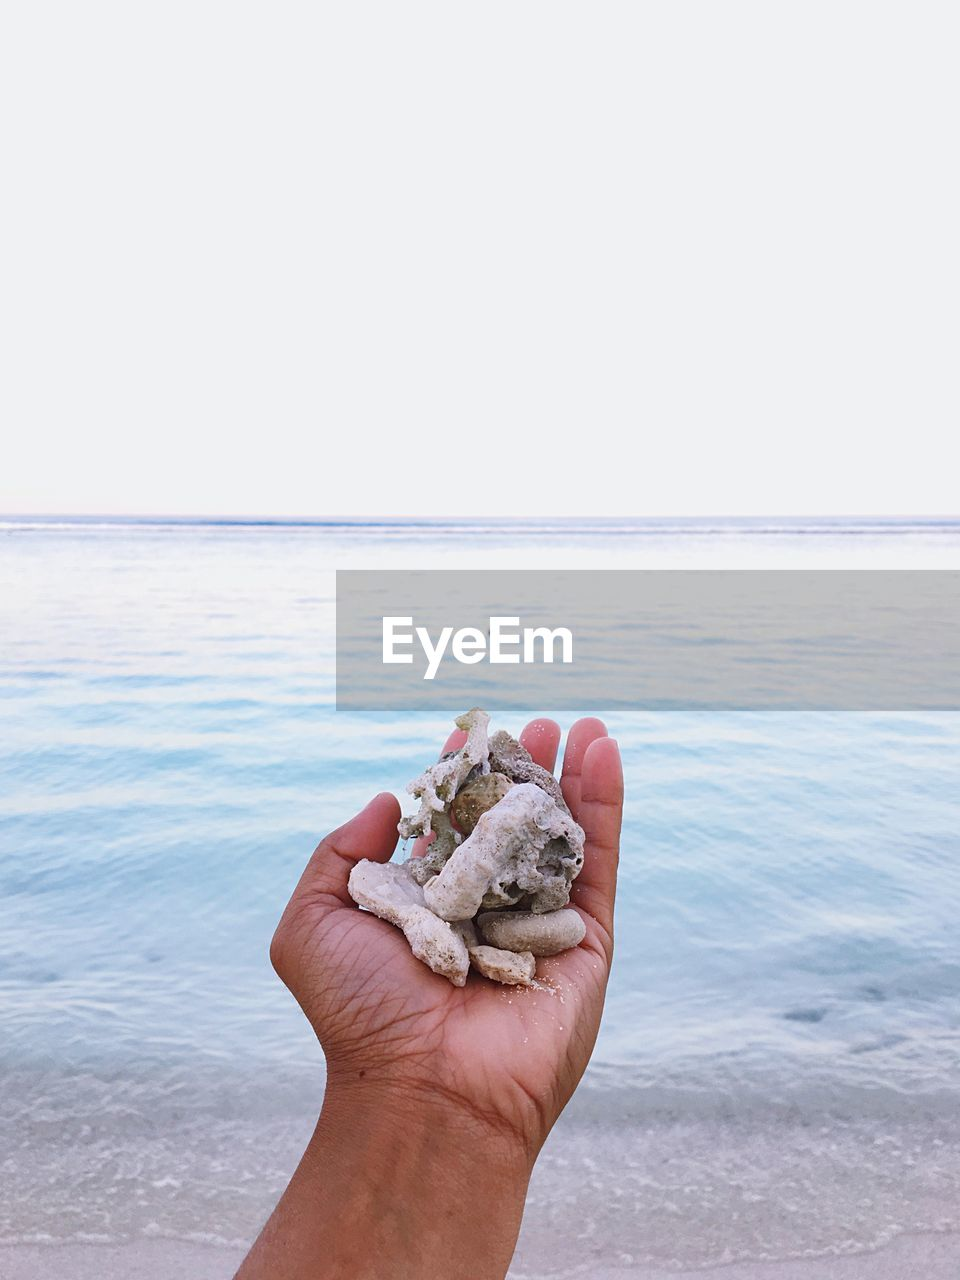 sea, human hand, hand, water, sky, horizon, beach, human body part, horizon over water, one person, holding, unrecognizable person, land, personal perspective, real people, clear sky, nature, human finger, finger, body part, outdoors